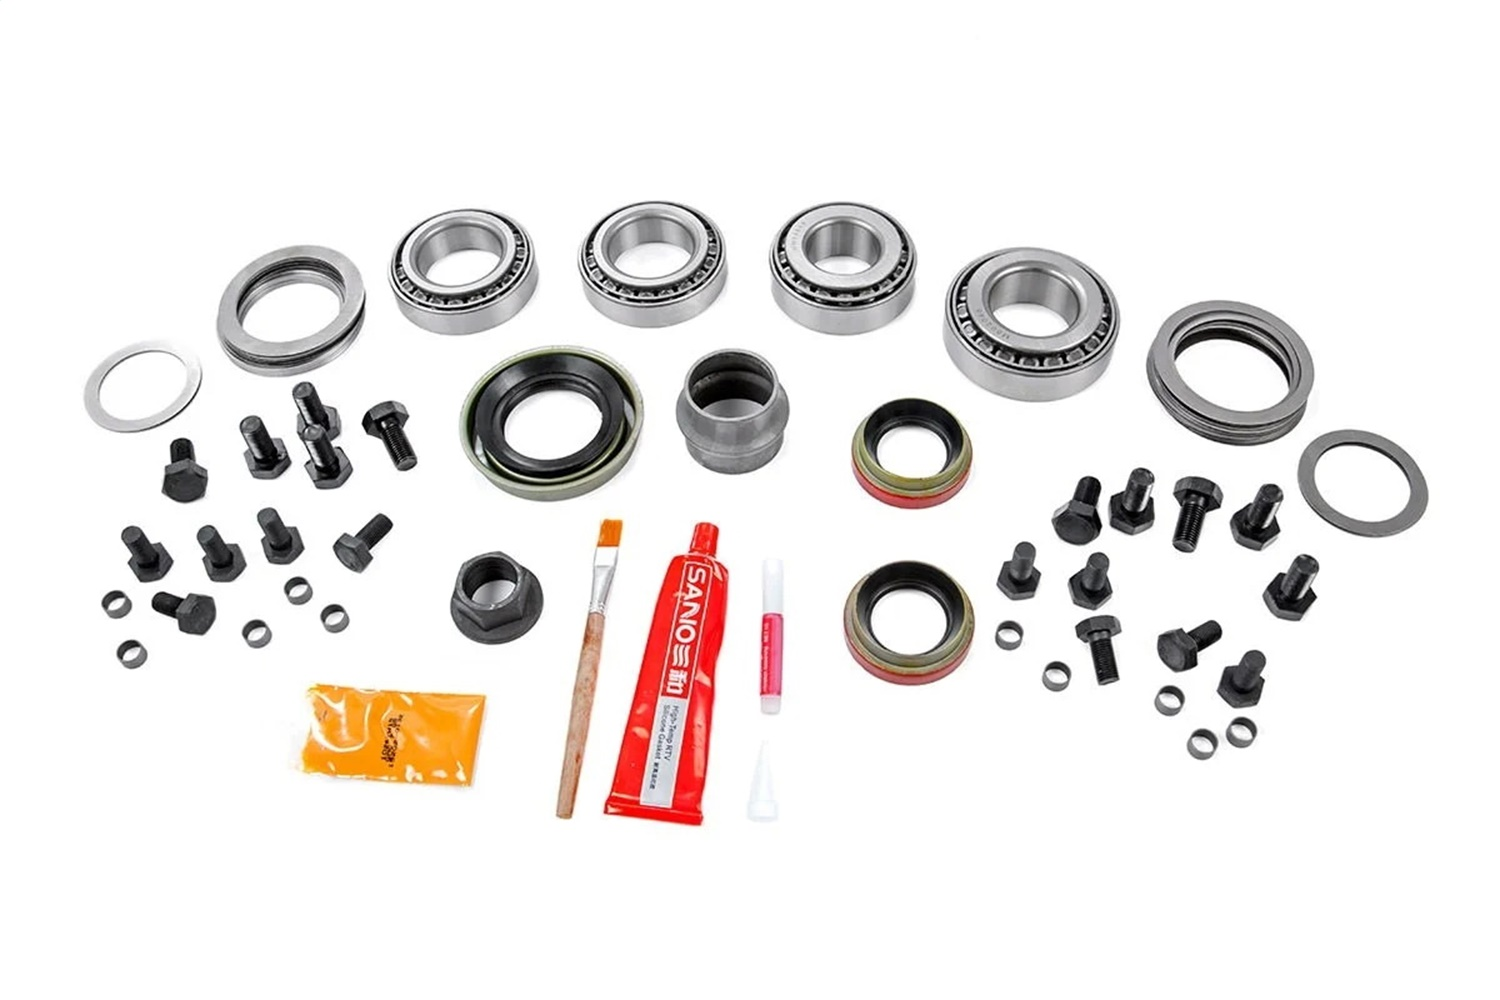 Rough Country 54400034 Ring And Pinion Master Install Kit